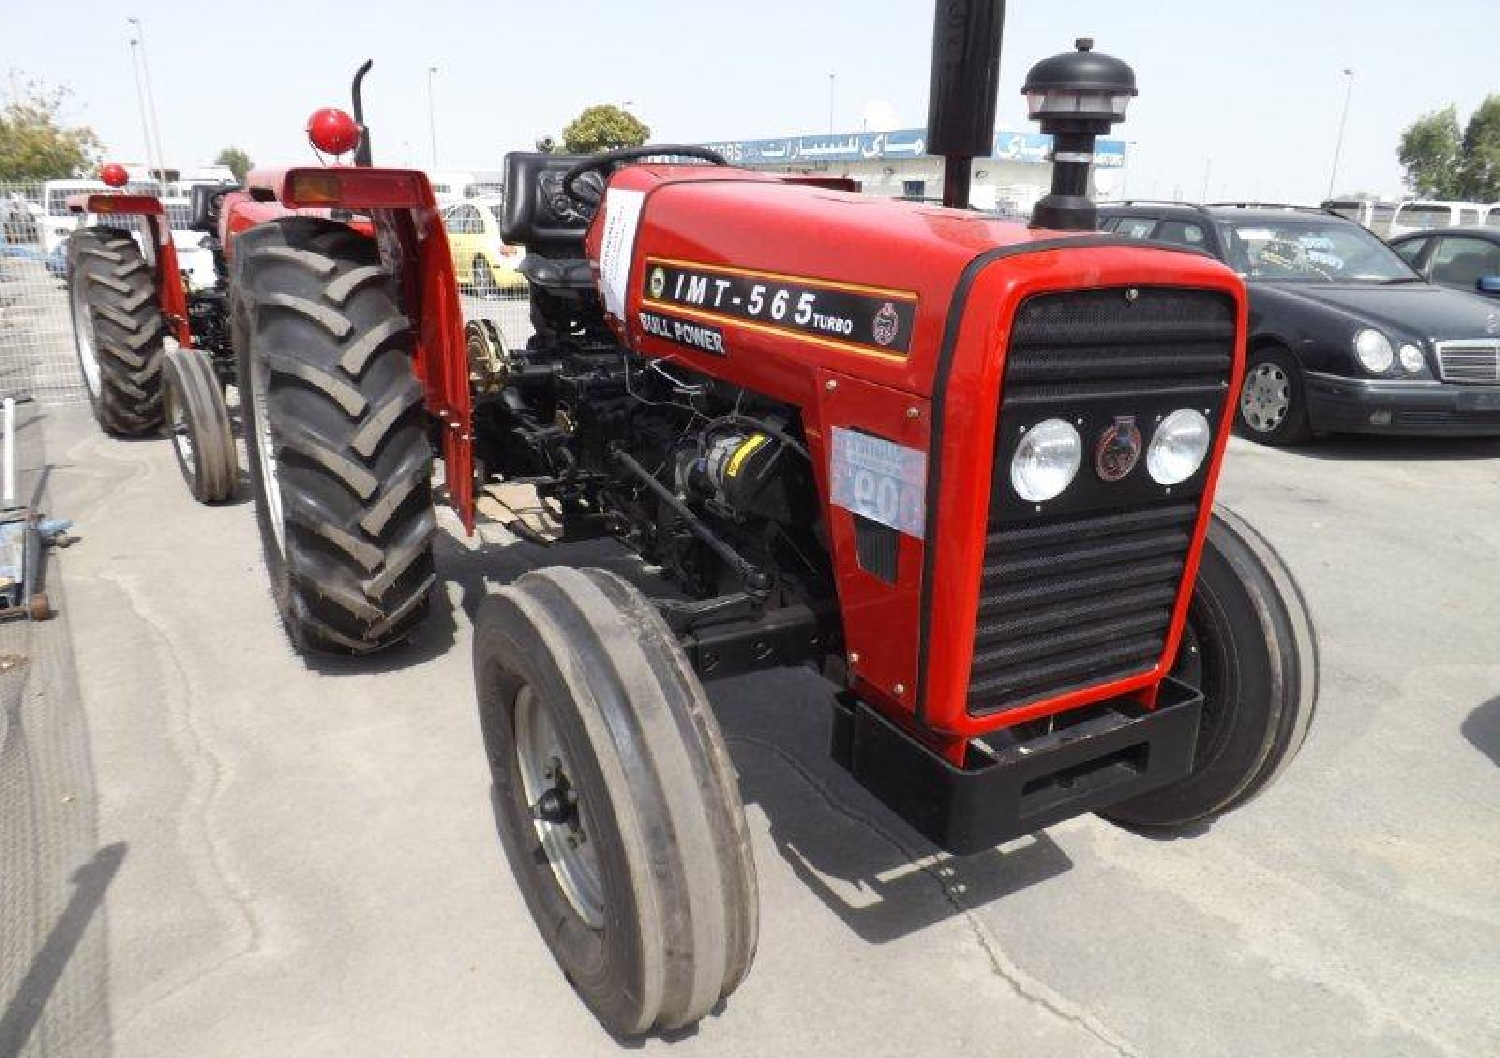 Used Imt Tractor 565 2014 Red For Sale | Vehicle No ED-50359